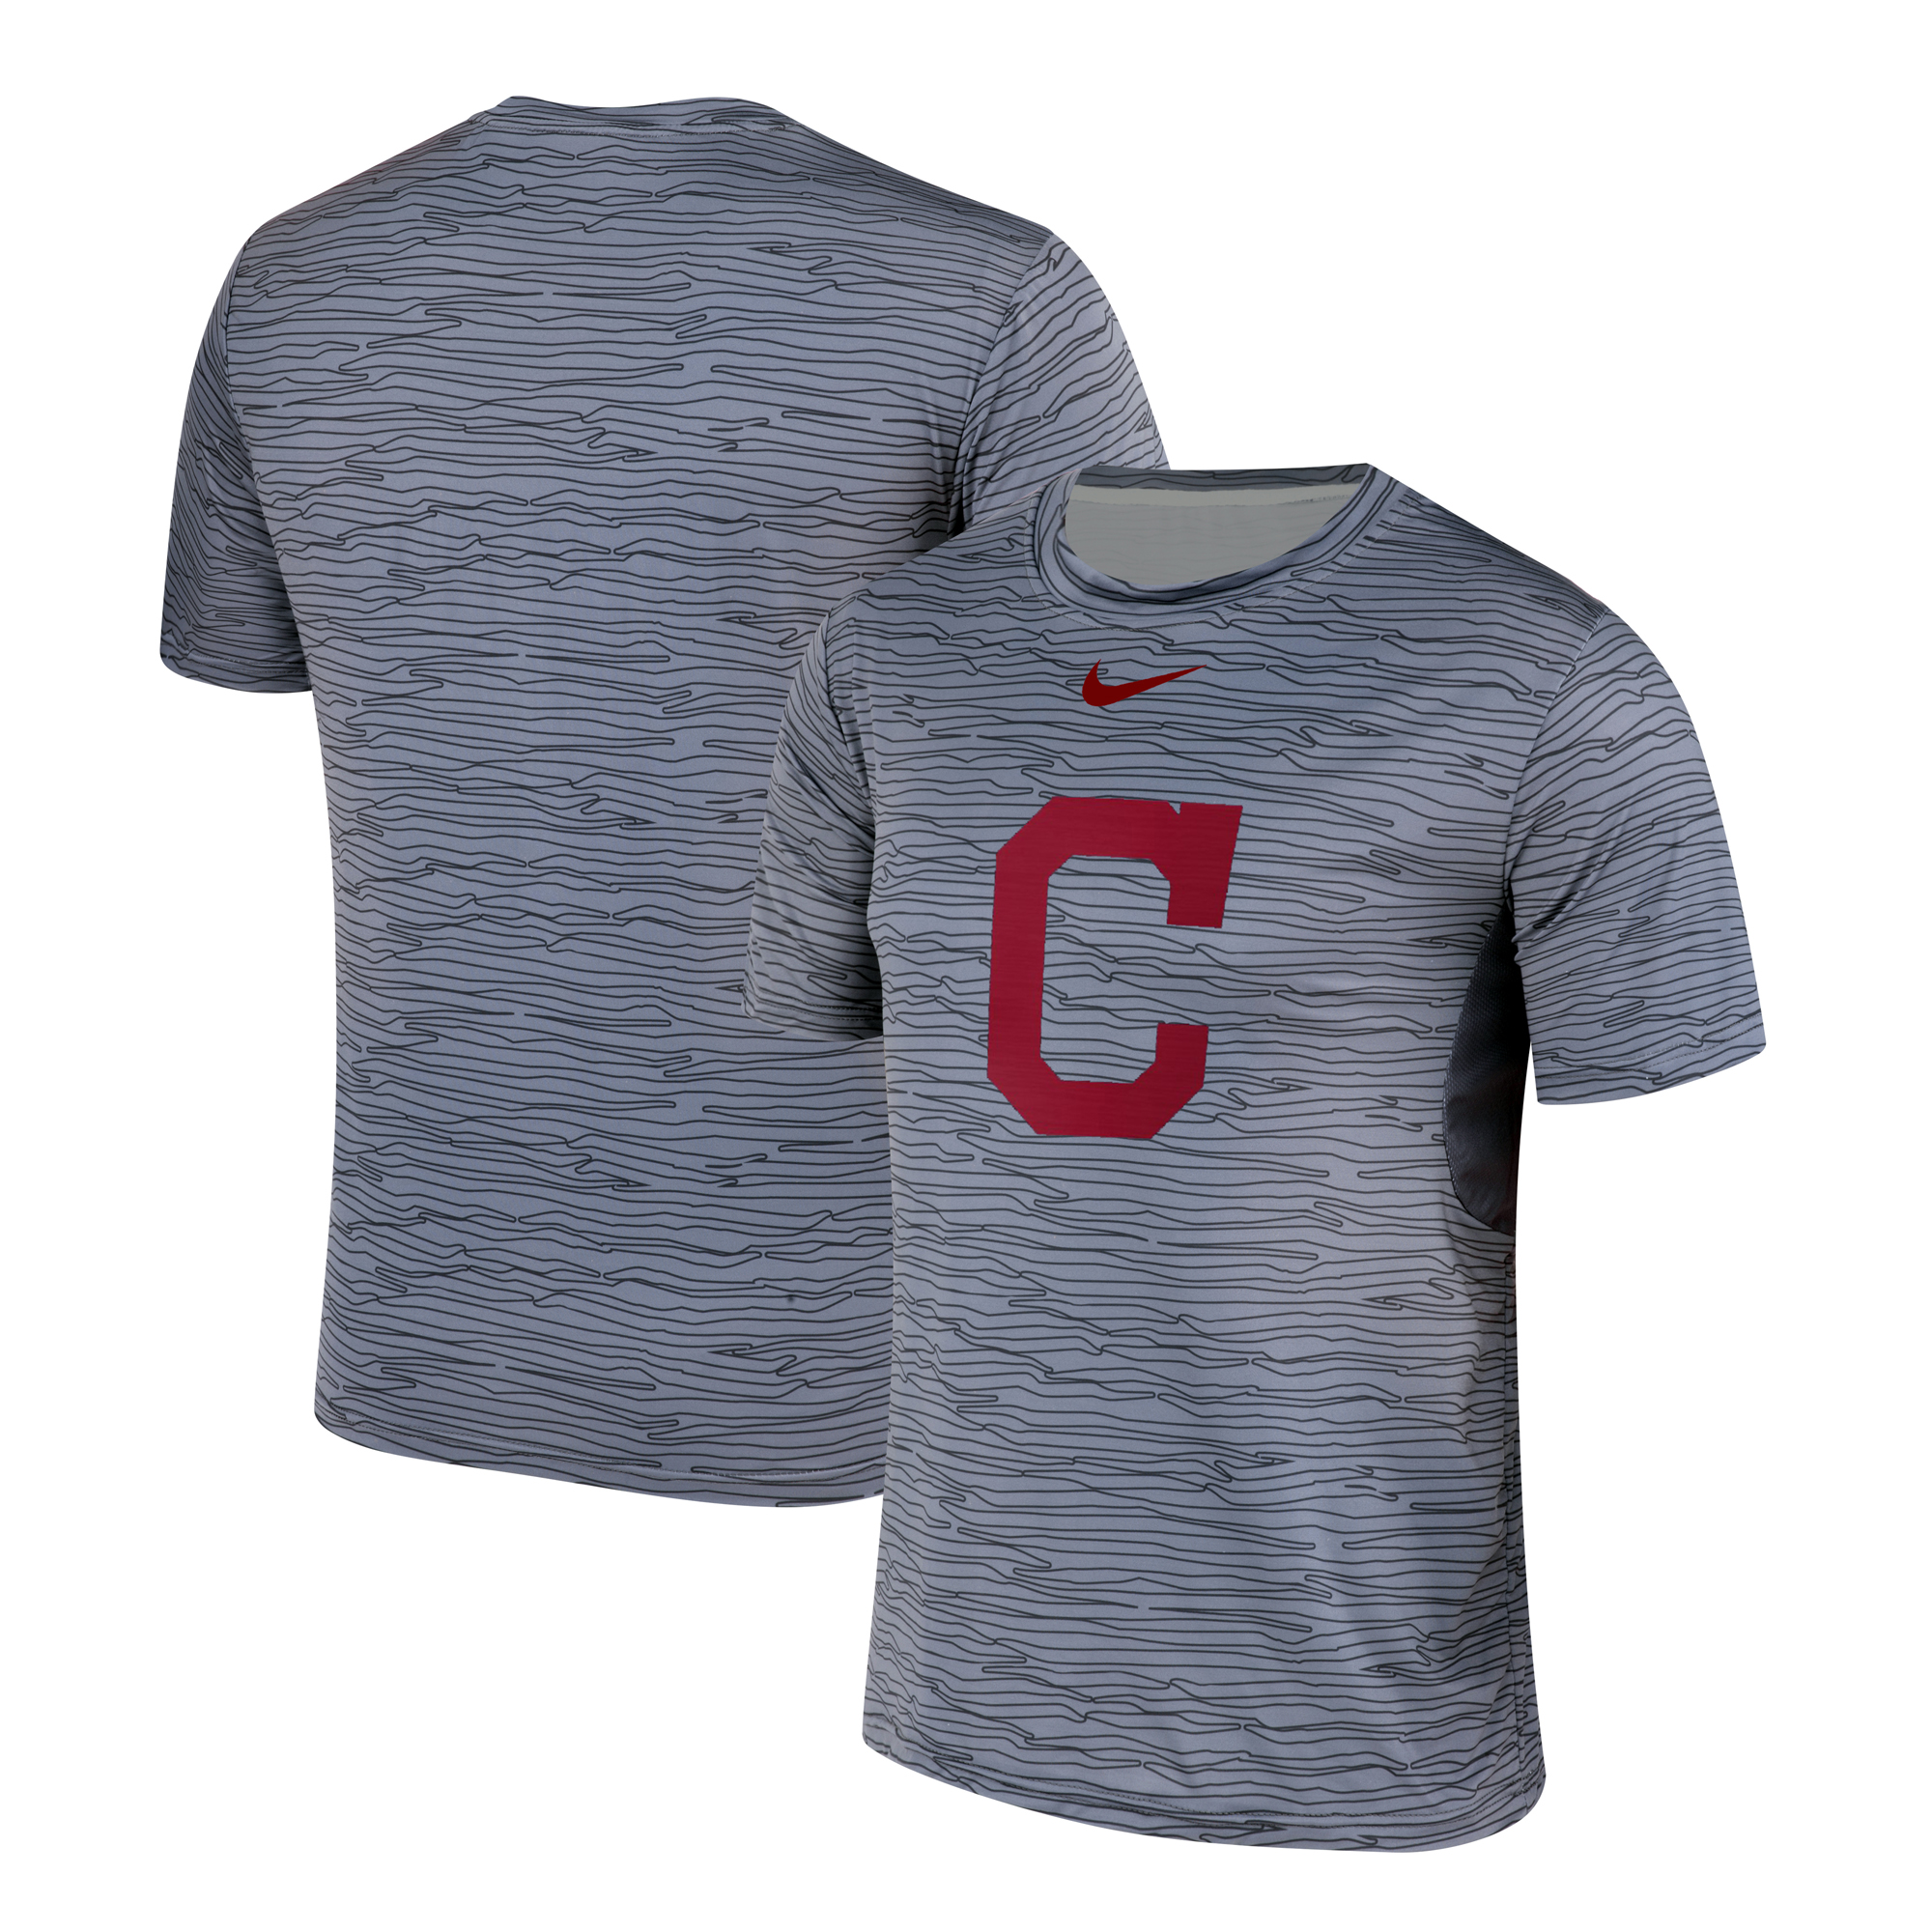 Nike Cleveland Indians Gray Black Striped Logo Performance T-Shirt